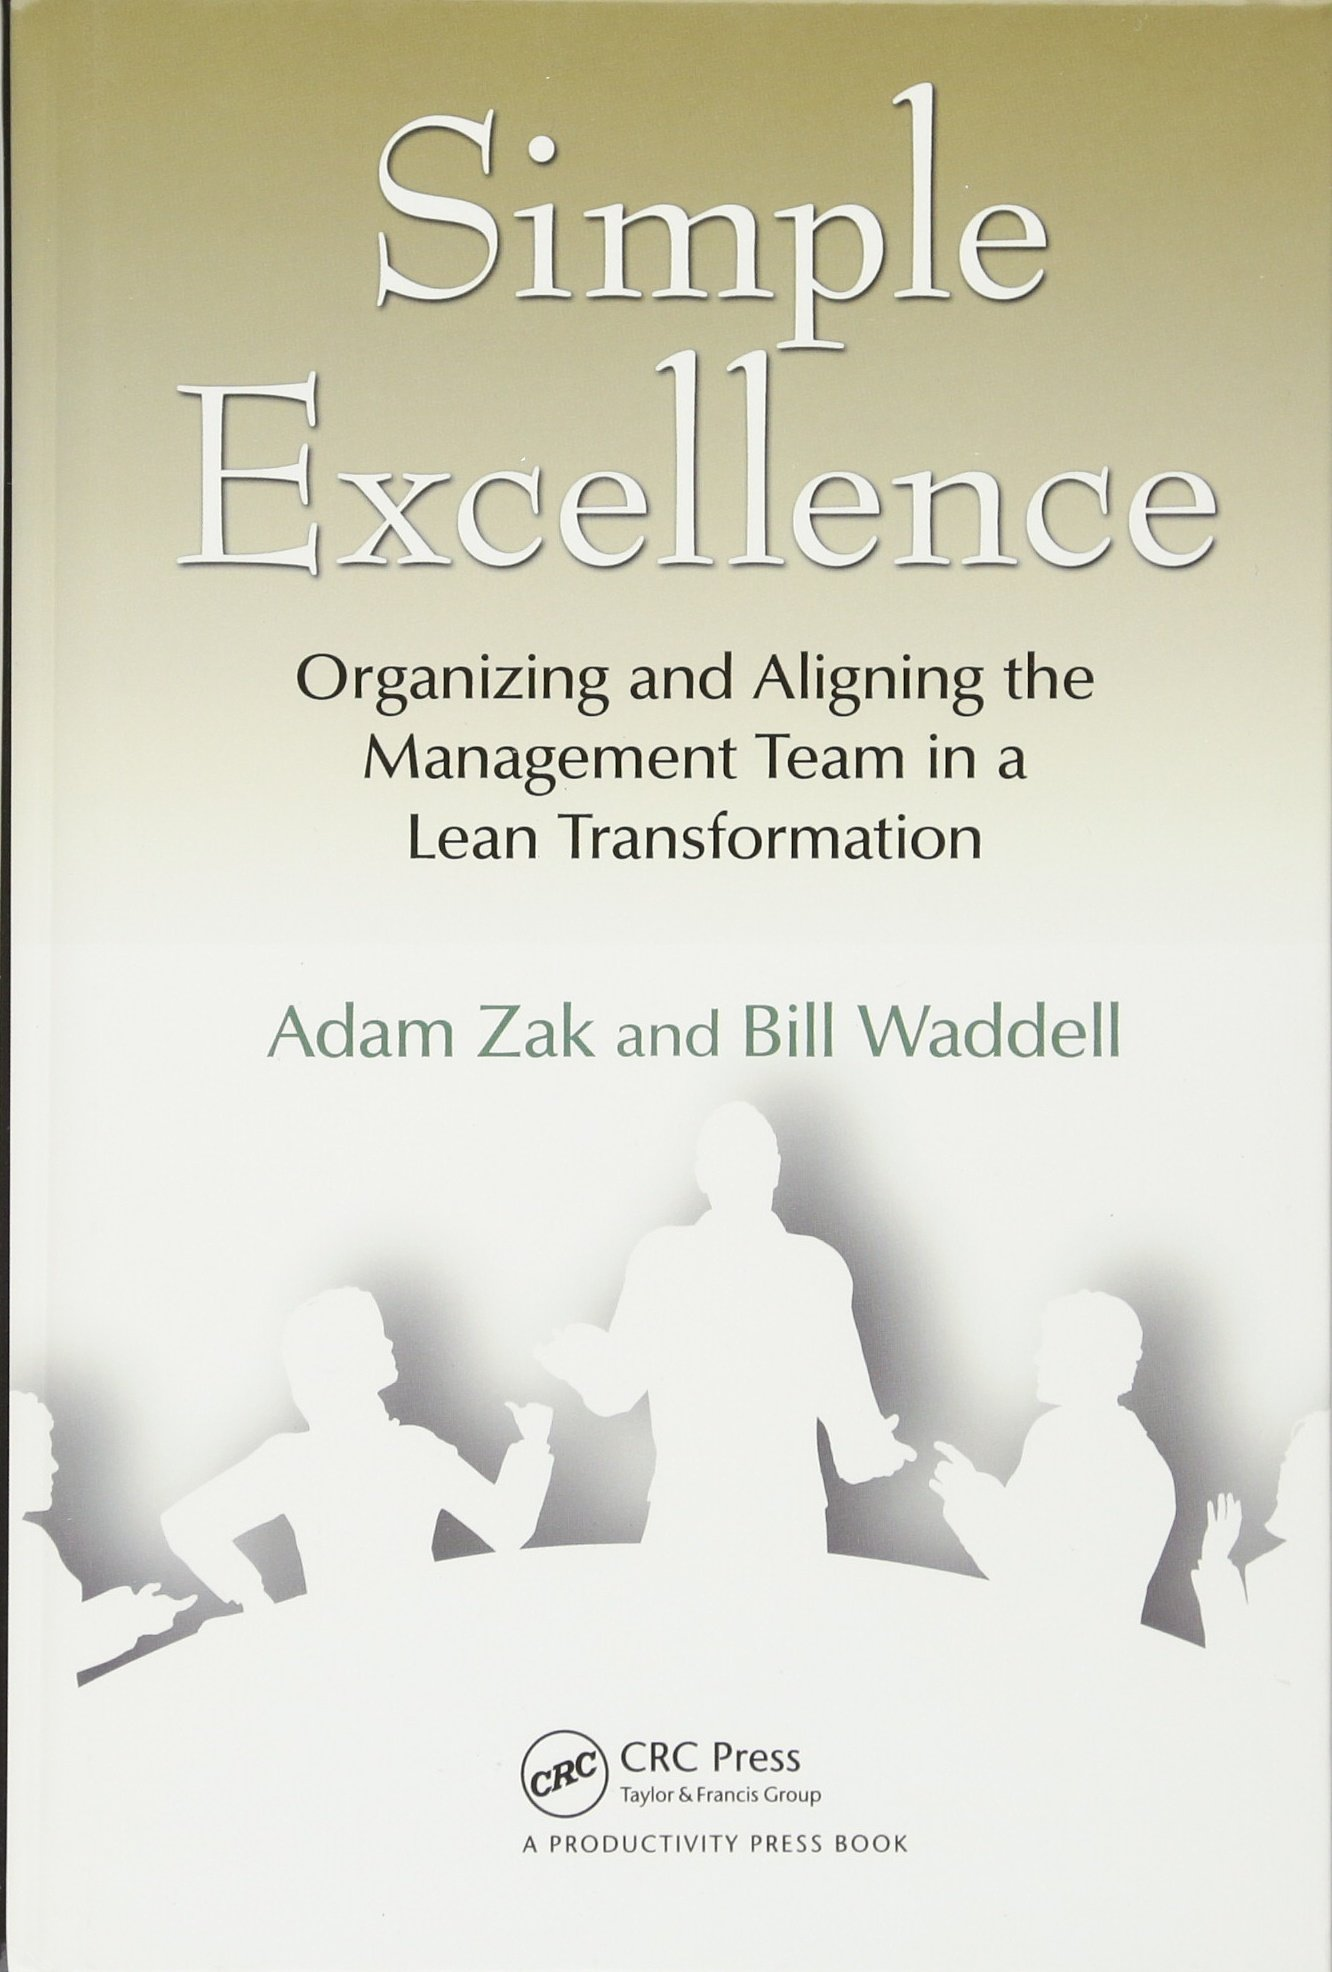 Simple Excellence : Organizing and Aligning the Management Team in a Lean Transformation.